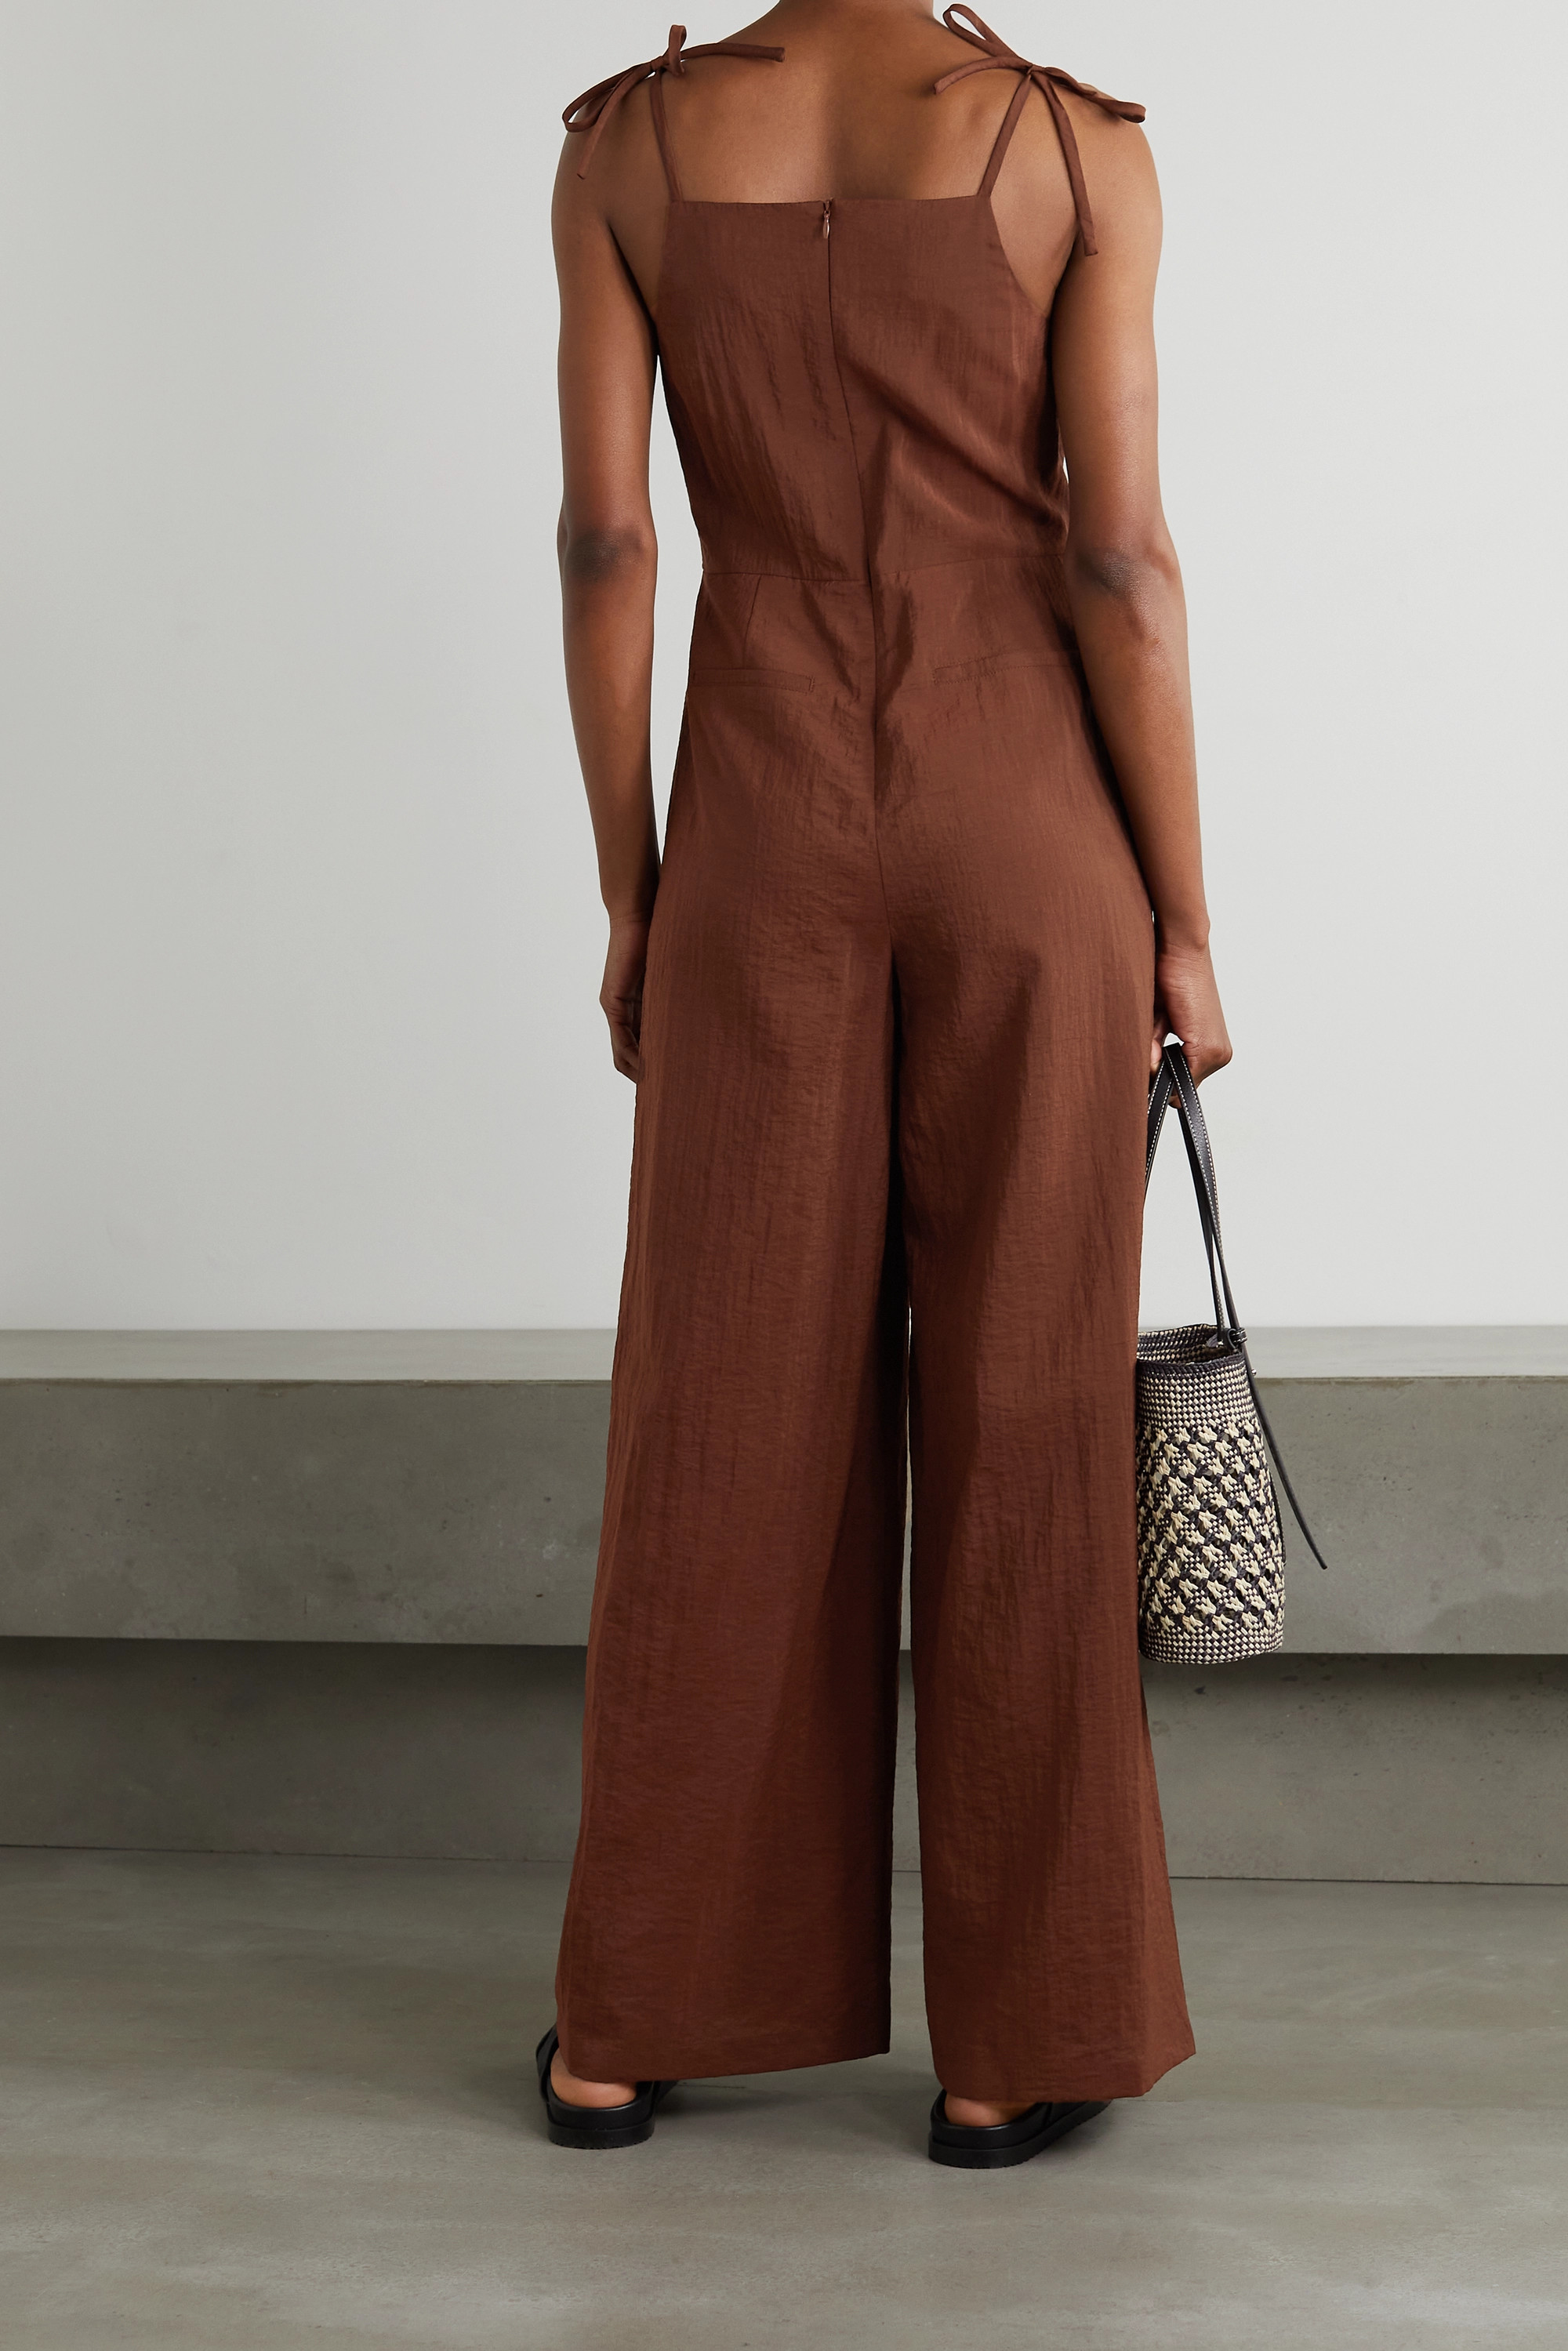 LE 17 SEPTEMBRE Tie-detailed crinkled woven jumpsuit